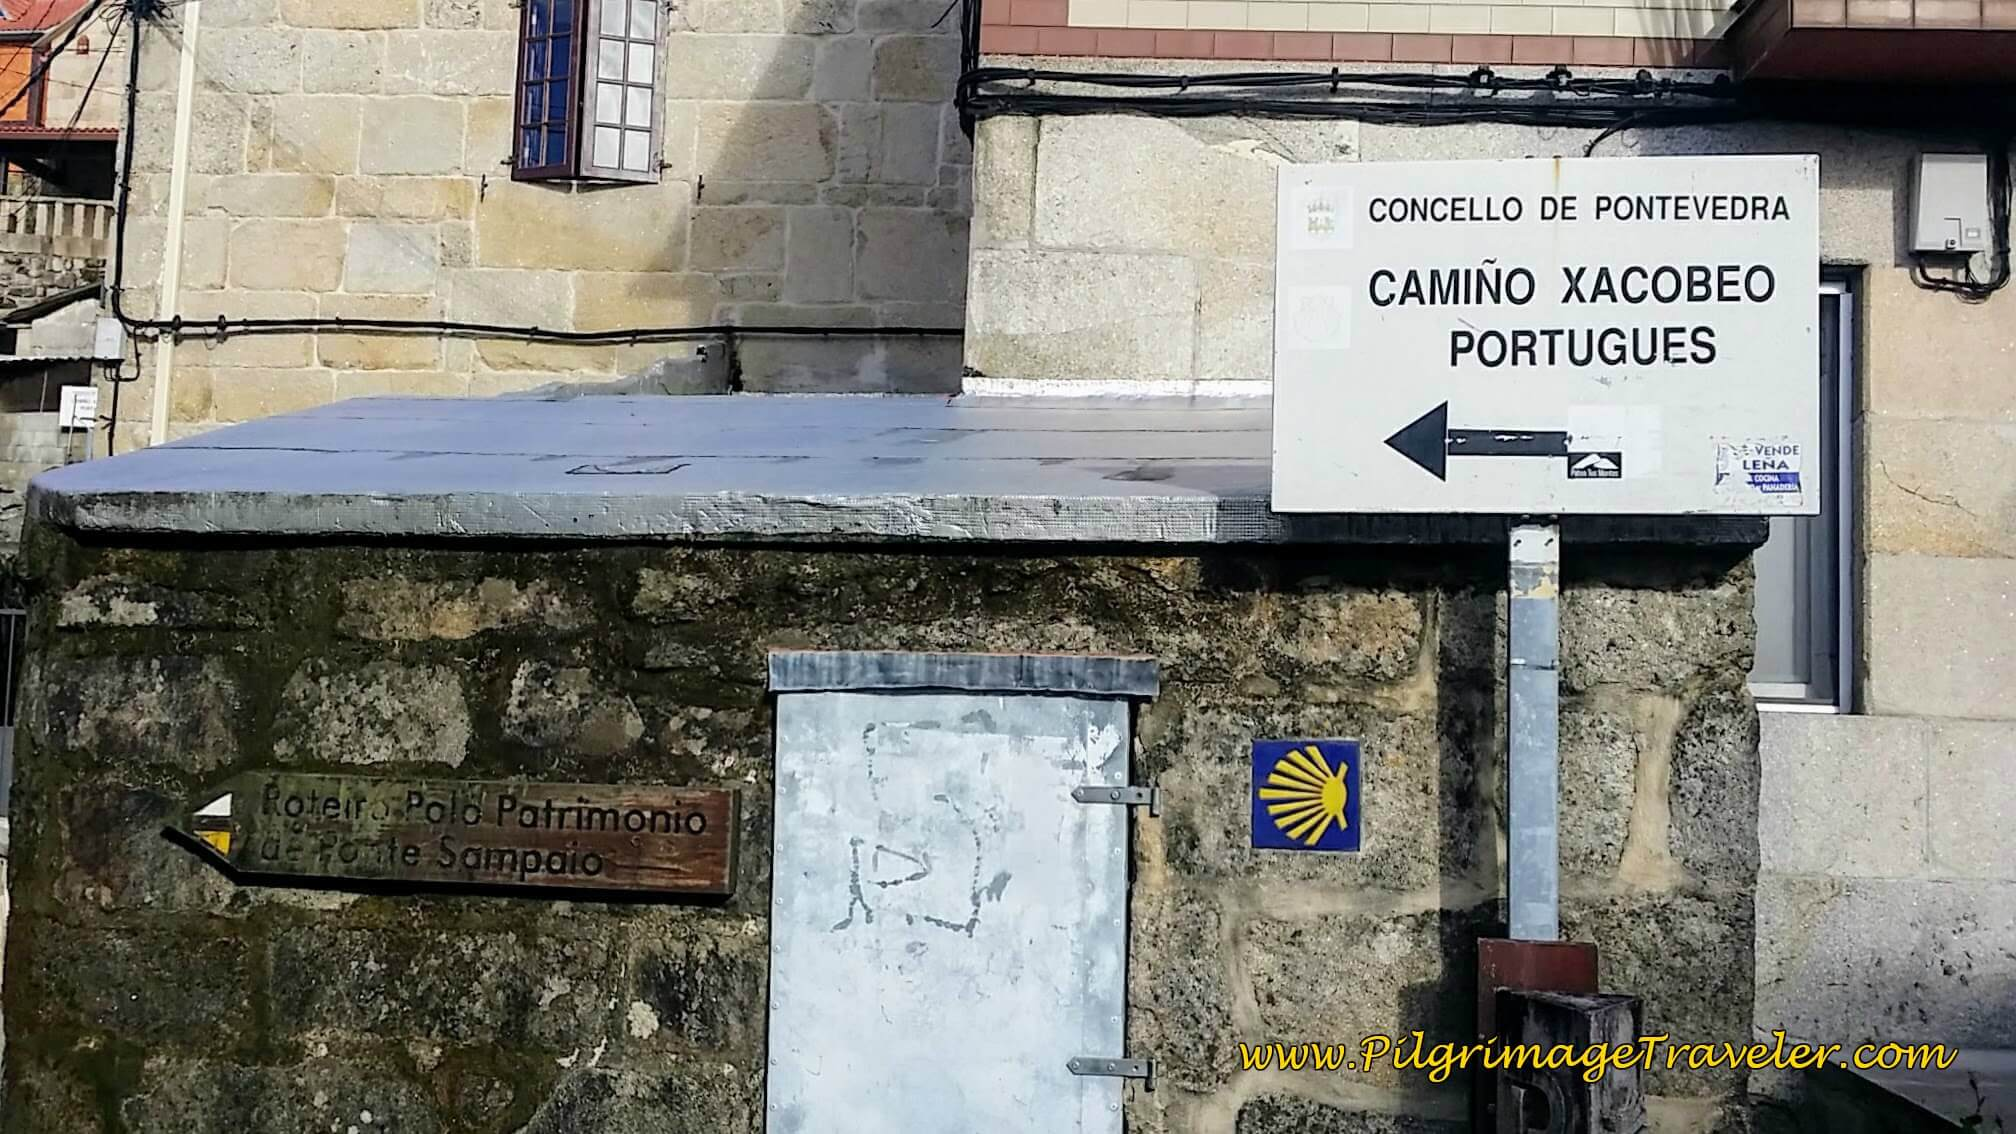 Camiño Xacobeo Portugues Sign -Turn Left Here After Bridge in Arcade, day twenty-two on the Camino Portugués